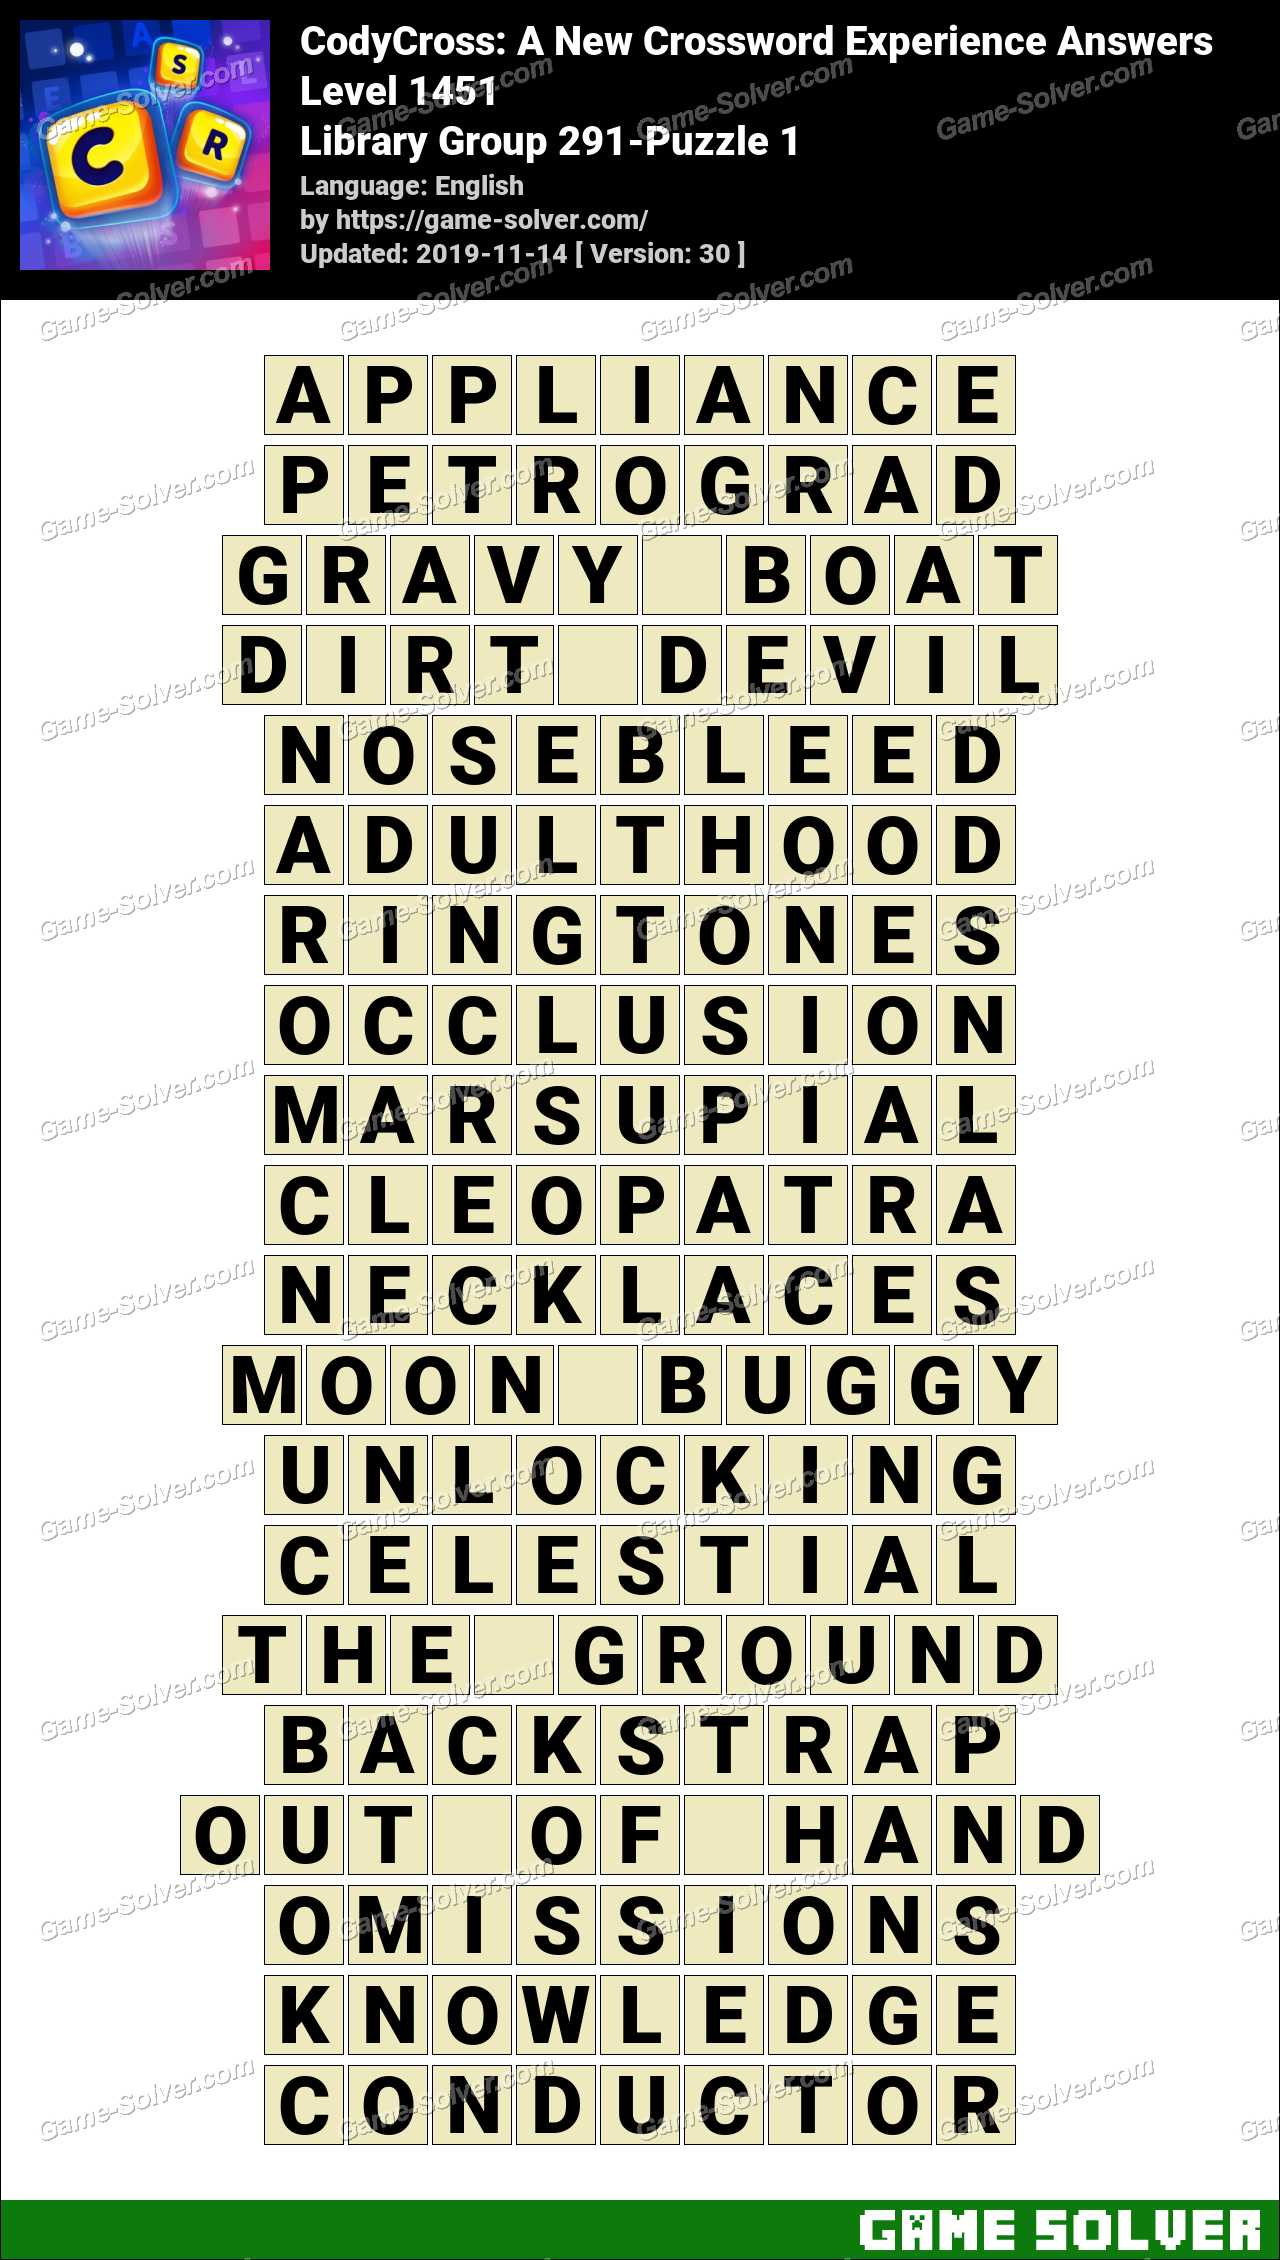 CodyCross Library Group 291-Puzzle 1 Answers